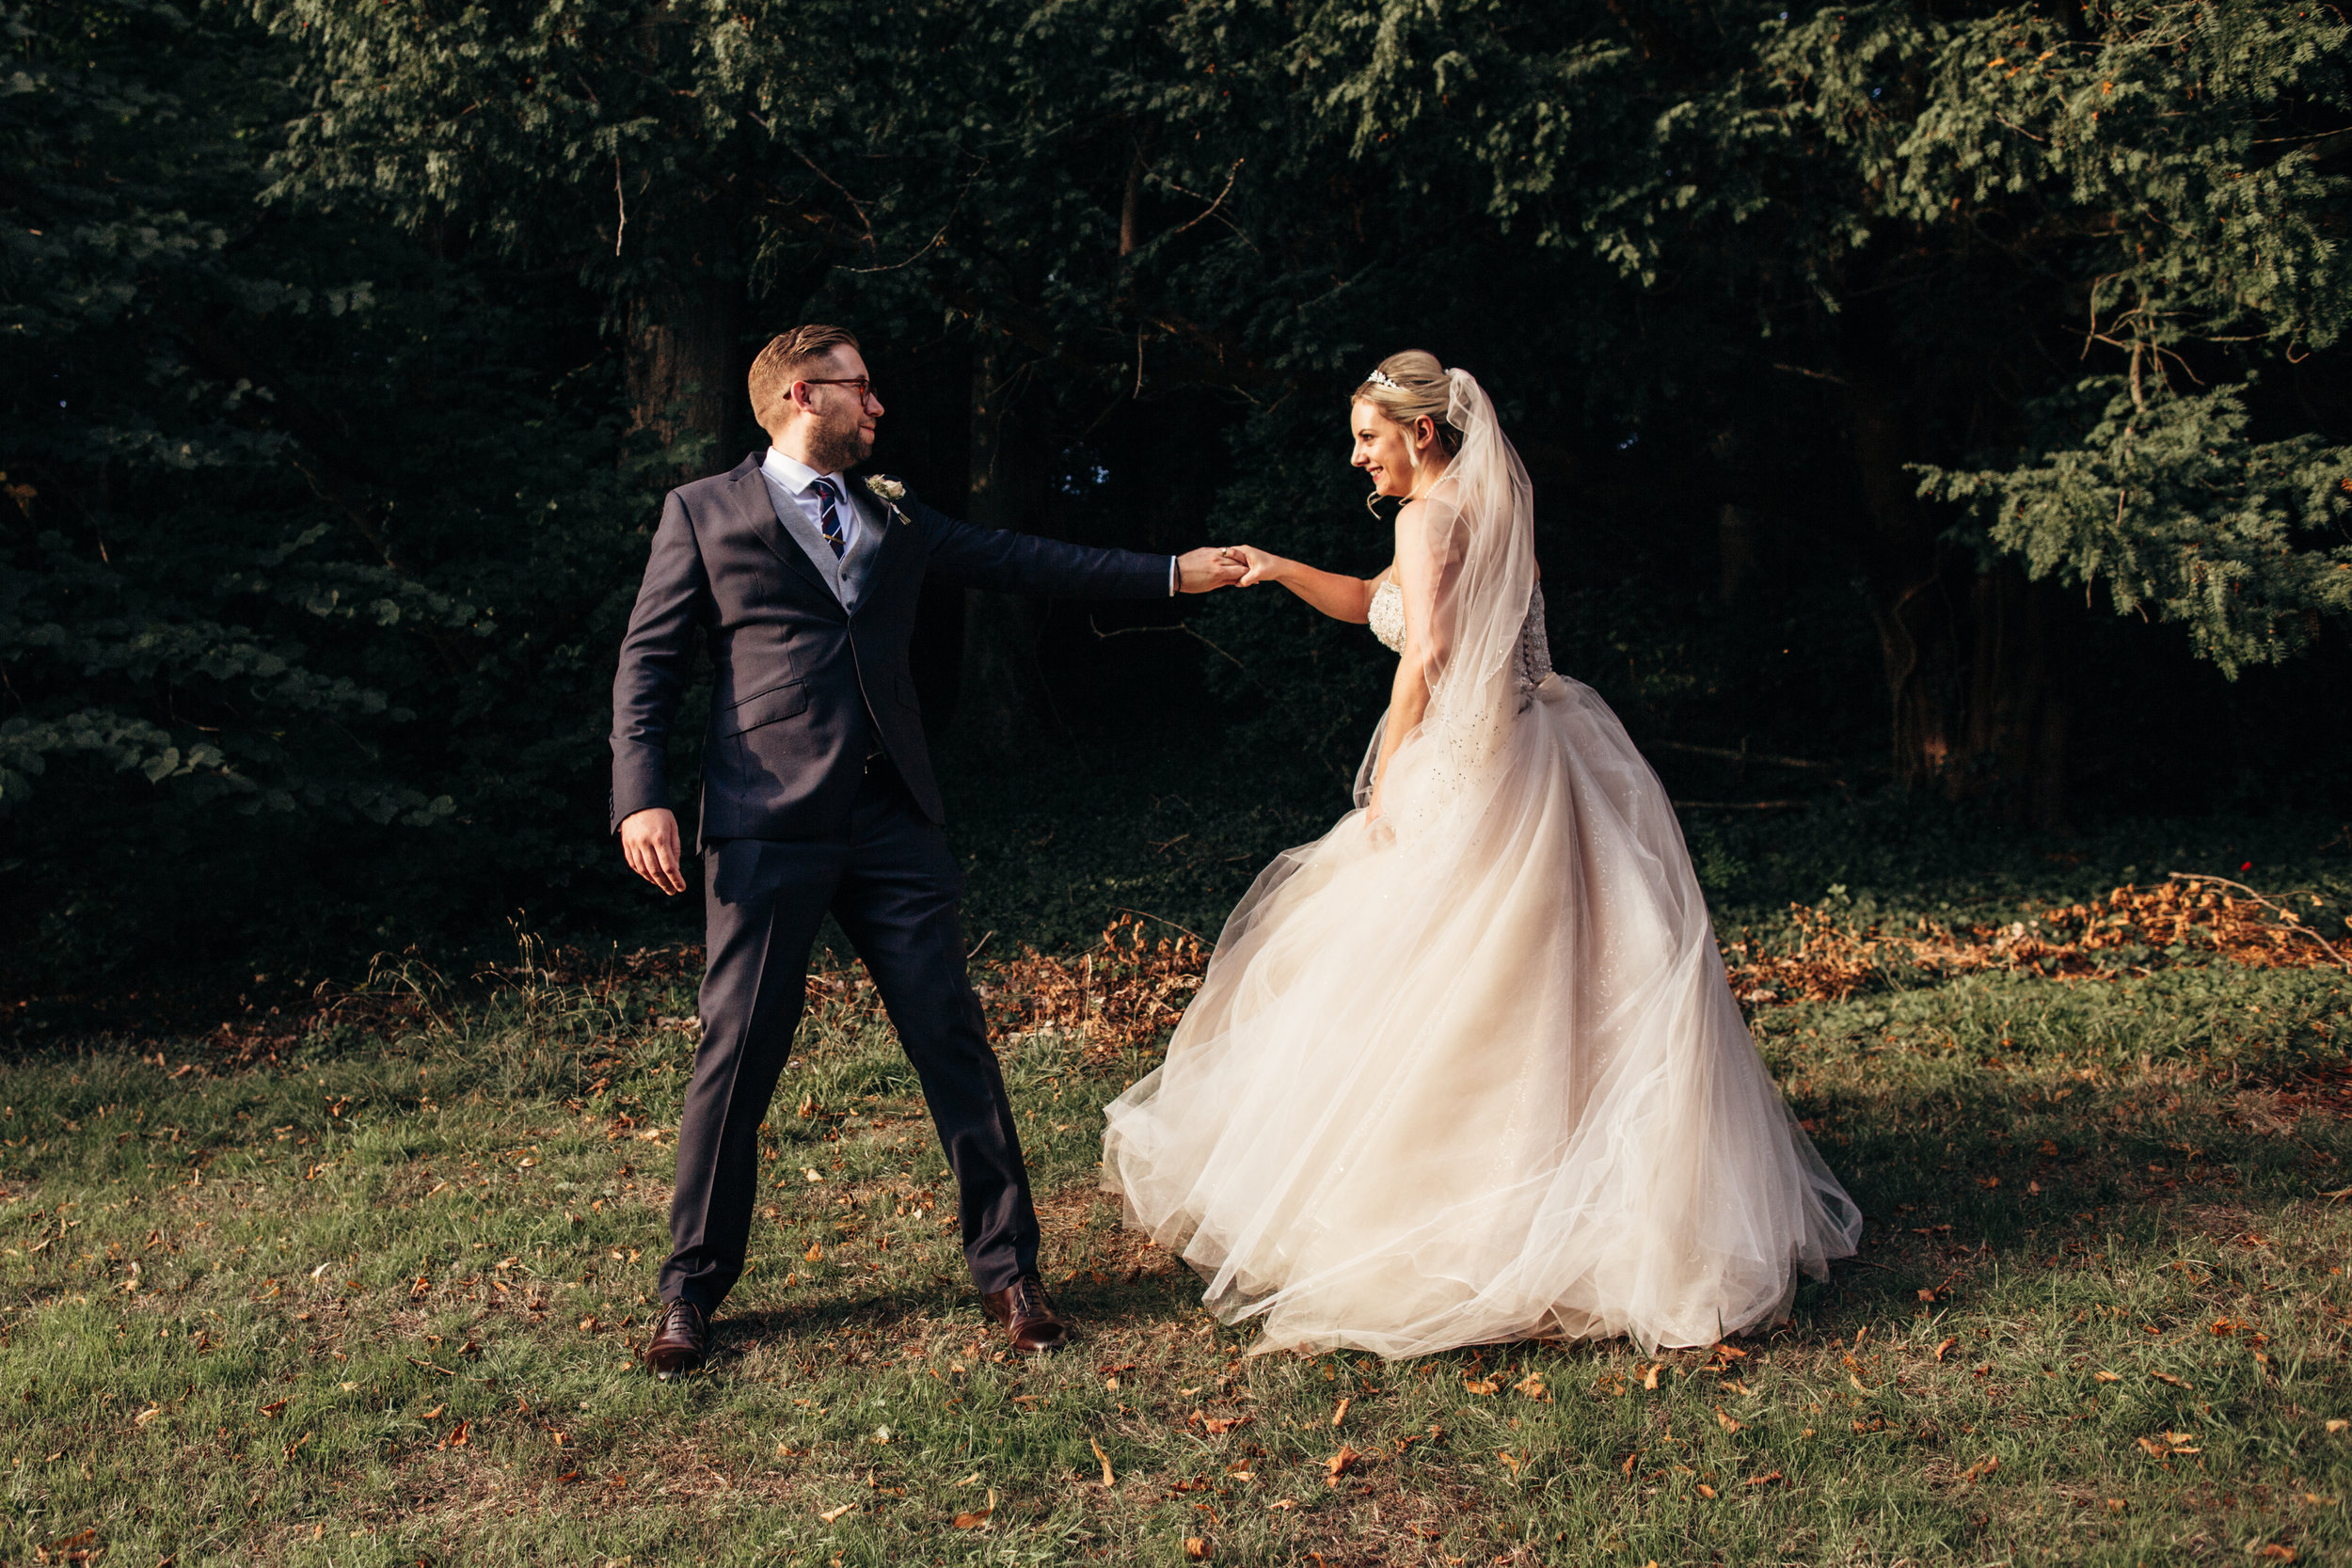 """Naomi really fitted into our wedding style.  She captured the day from beginning to end with some most beautiful natural shots.  We're still enjoying looking through all the photos and we'll treasure them forever. Thank you Naomi""  Polly + Nathan - August 2018"